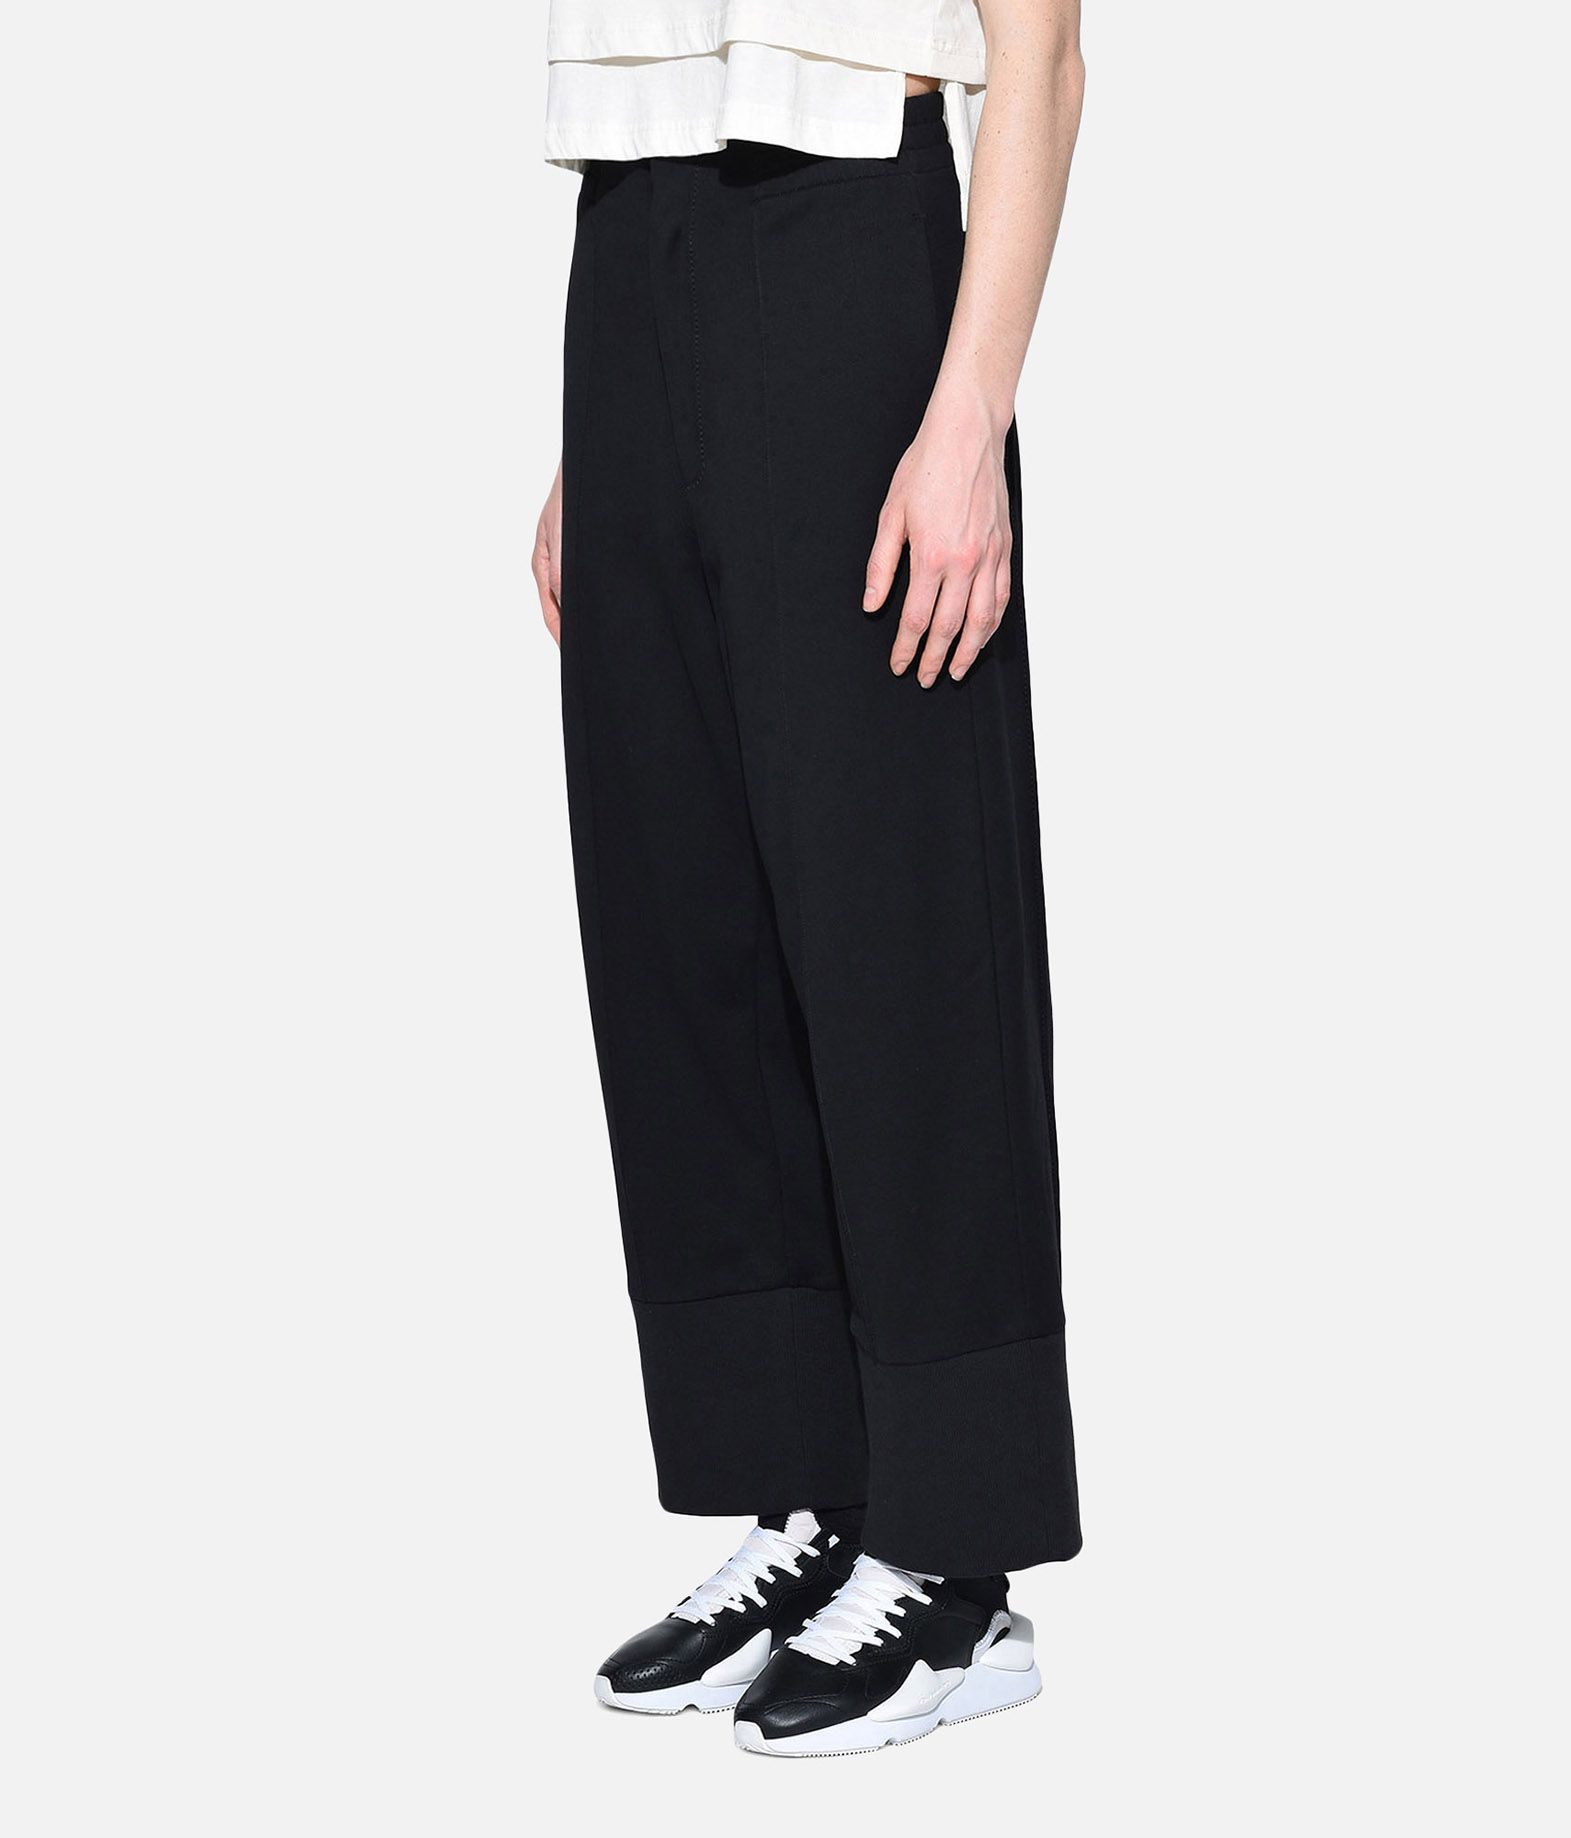 Y-3 Y-3 Sashiko Pants Casual pants Woman e